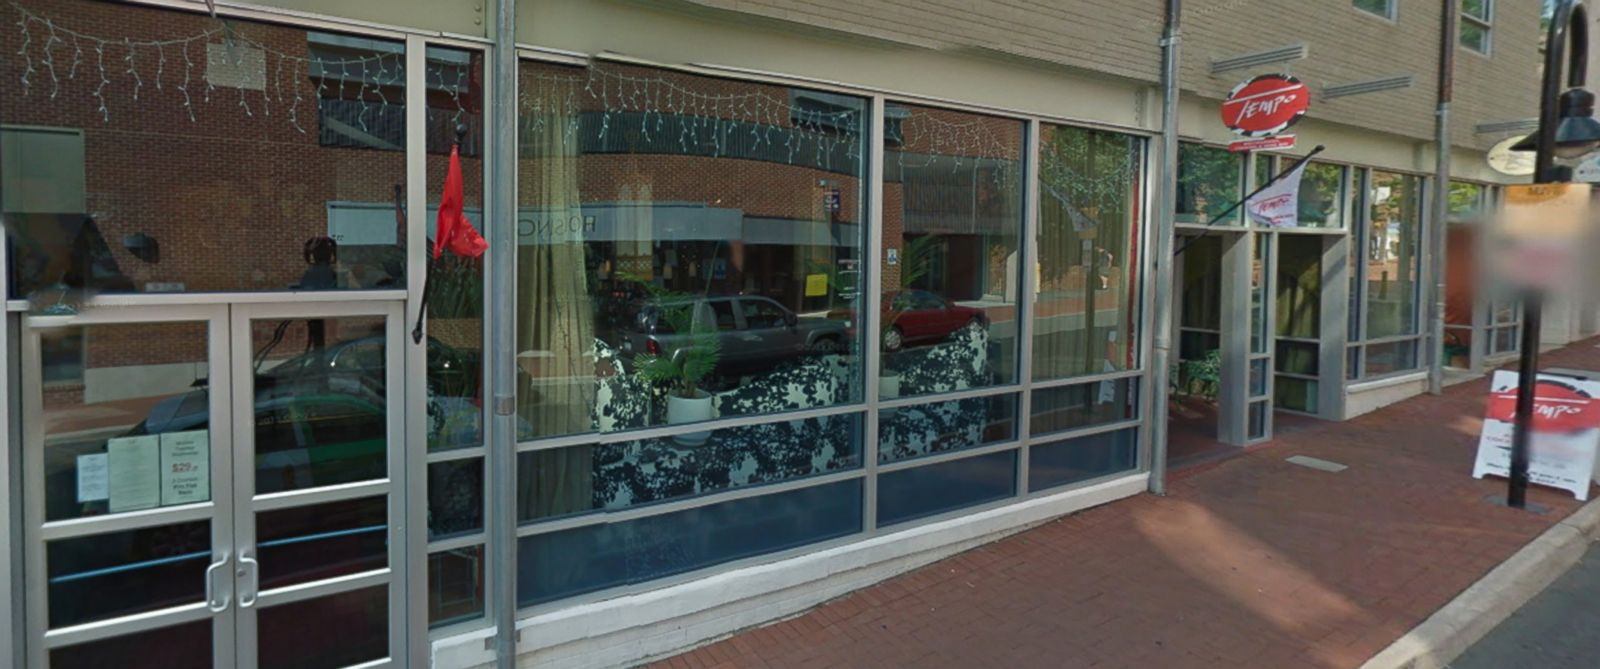 PHOTO: Tempo Restaurant can be seen in this screen grab from Google Maps.